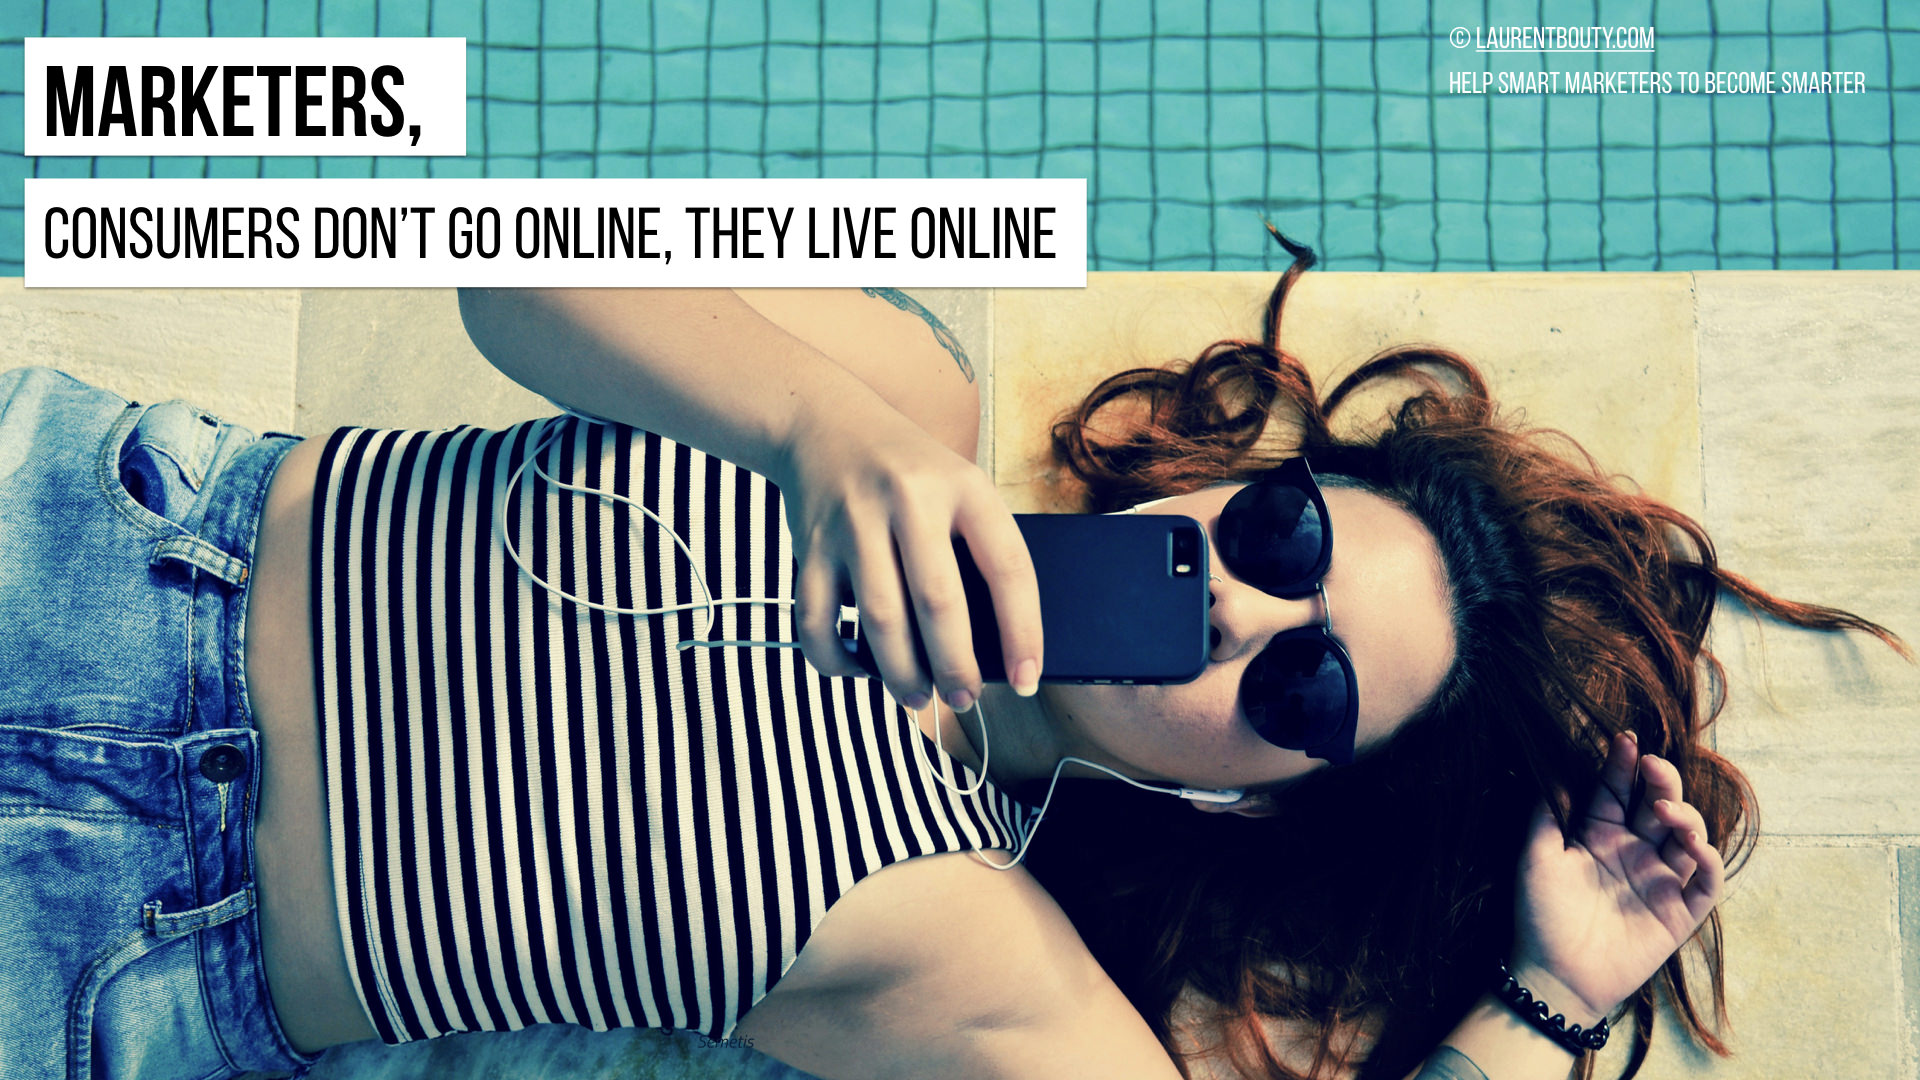 Marketers, Consumers live online